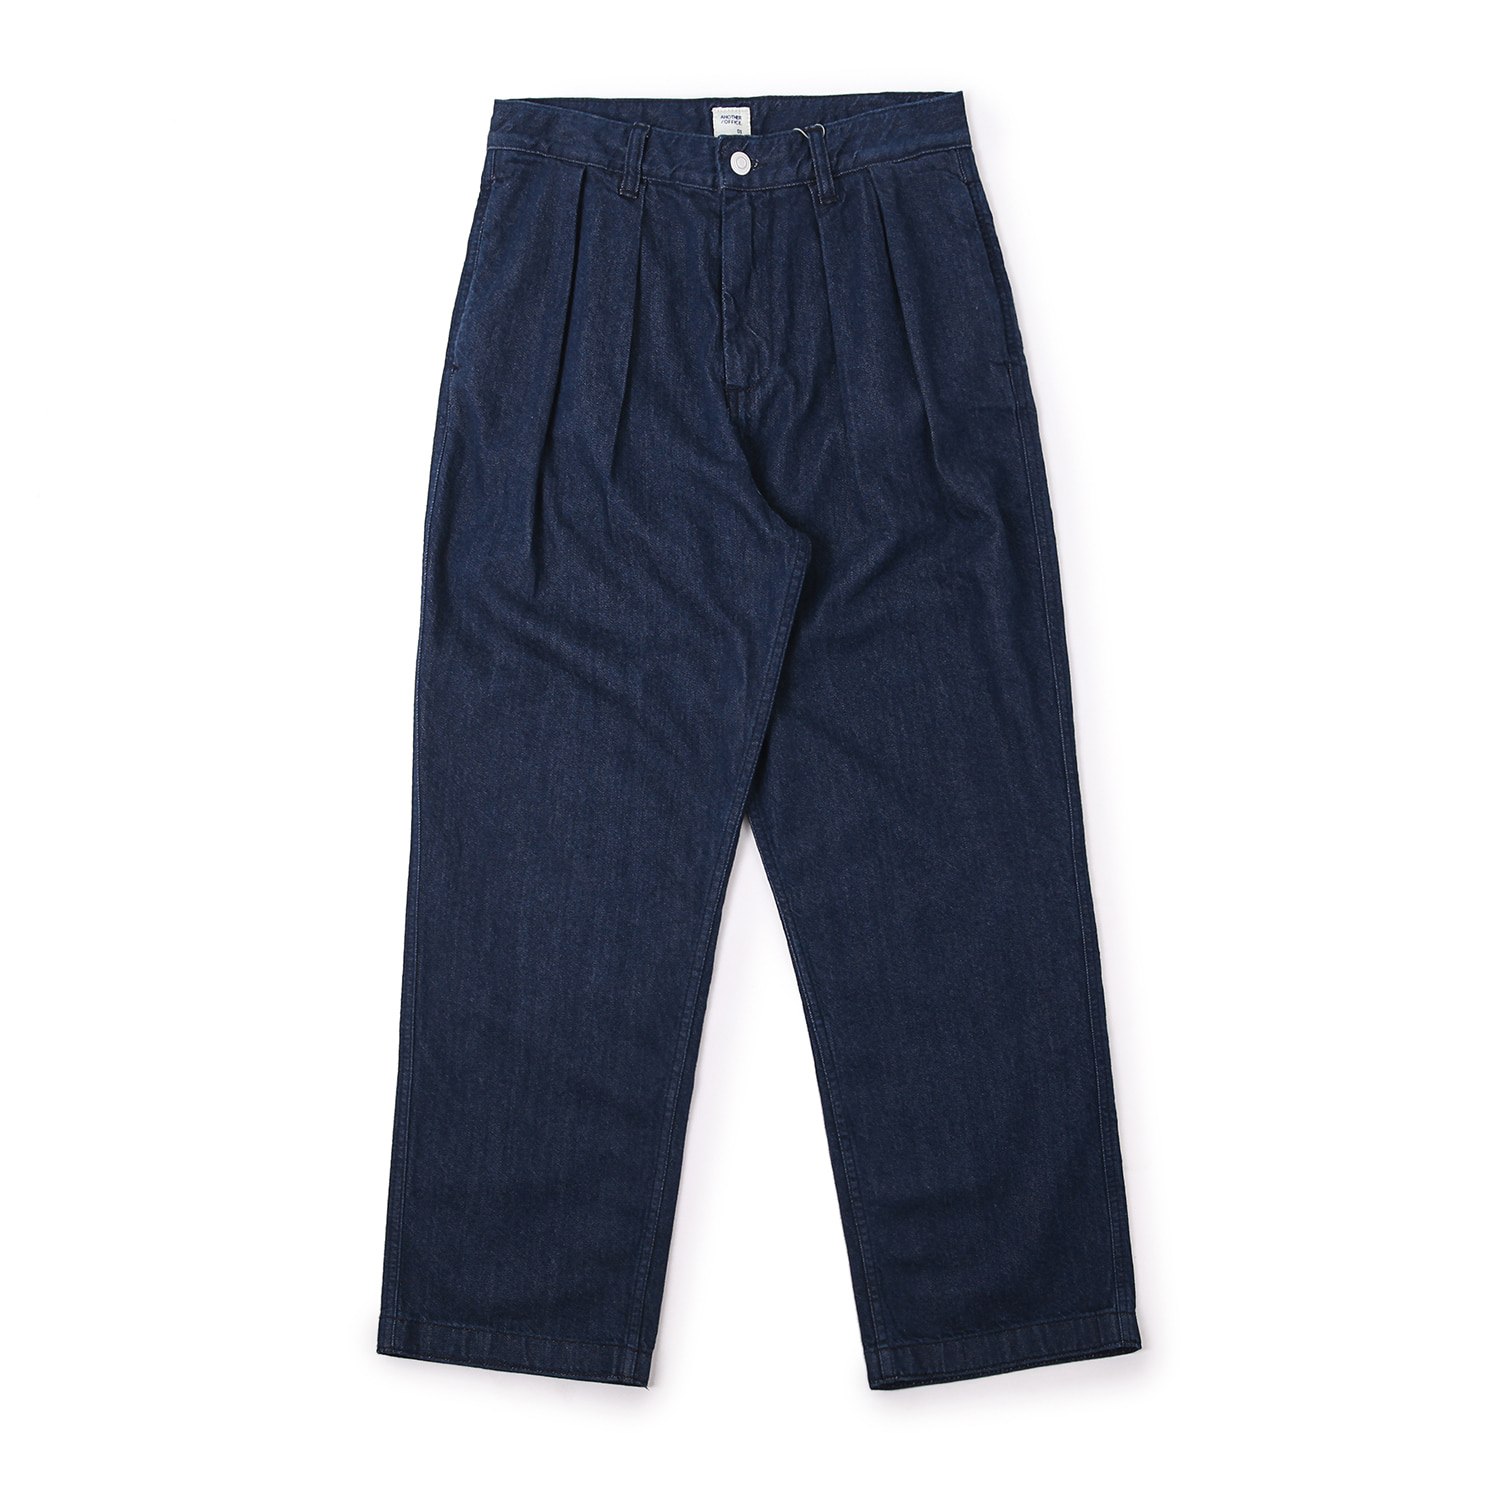 25%OFF_Officer Two-Tuck Denim Pants (Indigo)